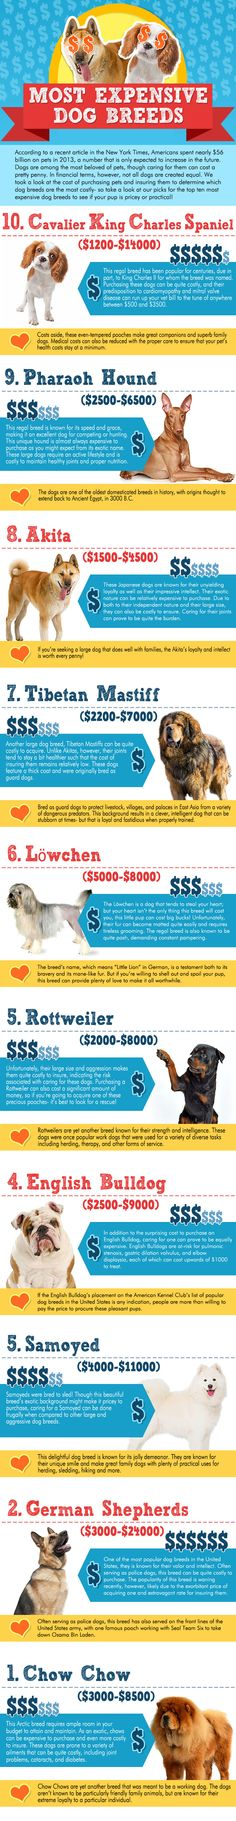 Most Expensive Dog Breeds #infographic